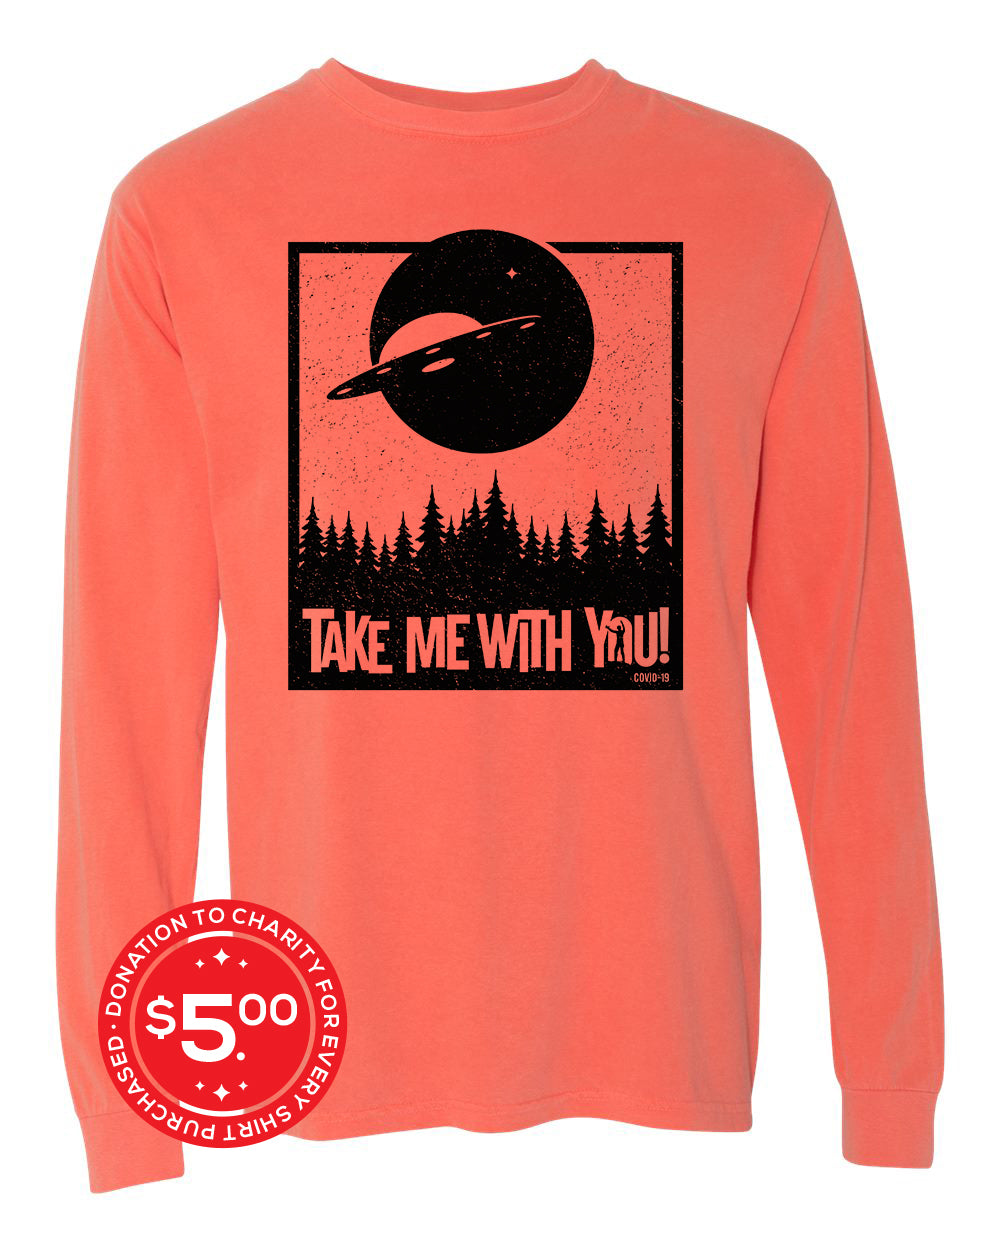 Take Me Long Sleeve Tee - Bright Salmon - Front - Donate 5